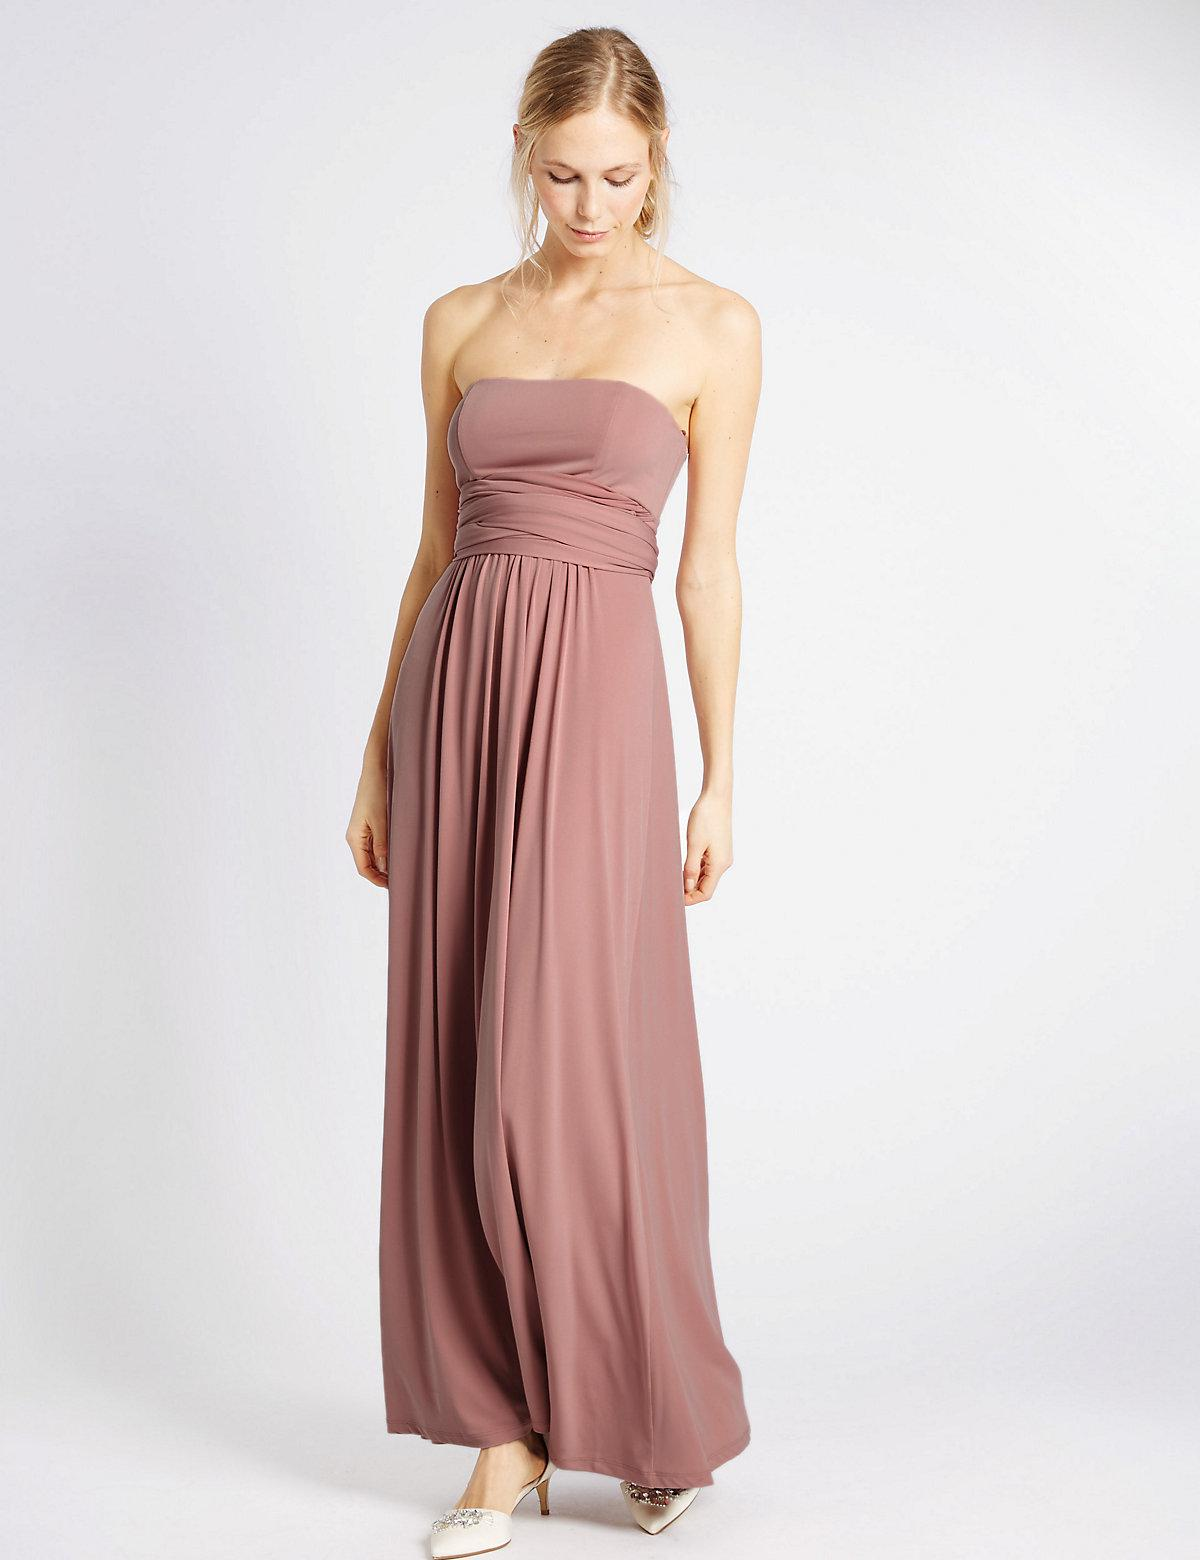 Lyst - Marks & Spencer Multiway Strap Maxi Dress in Pink - Save 29%